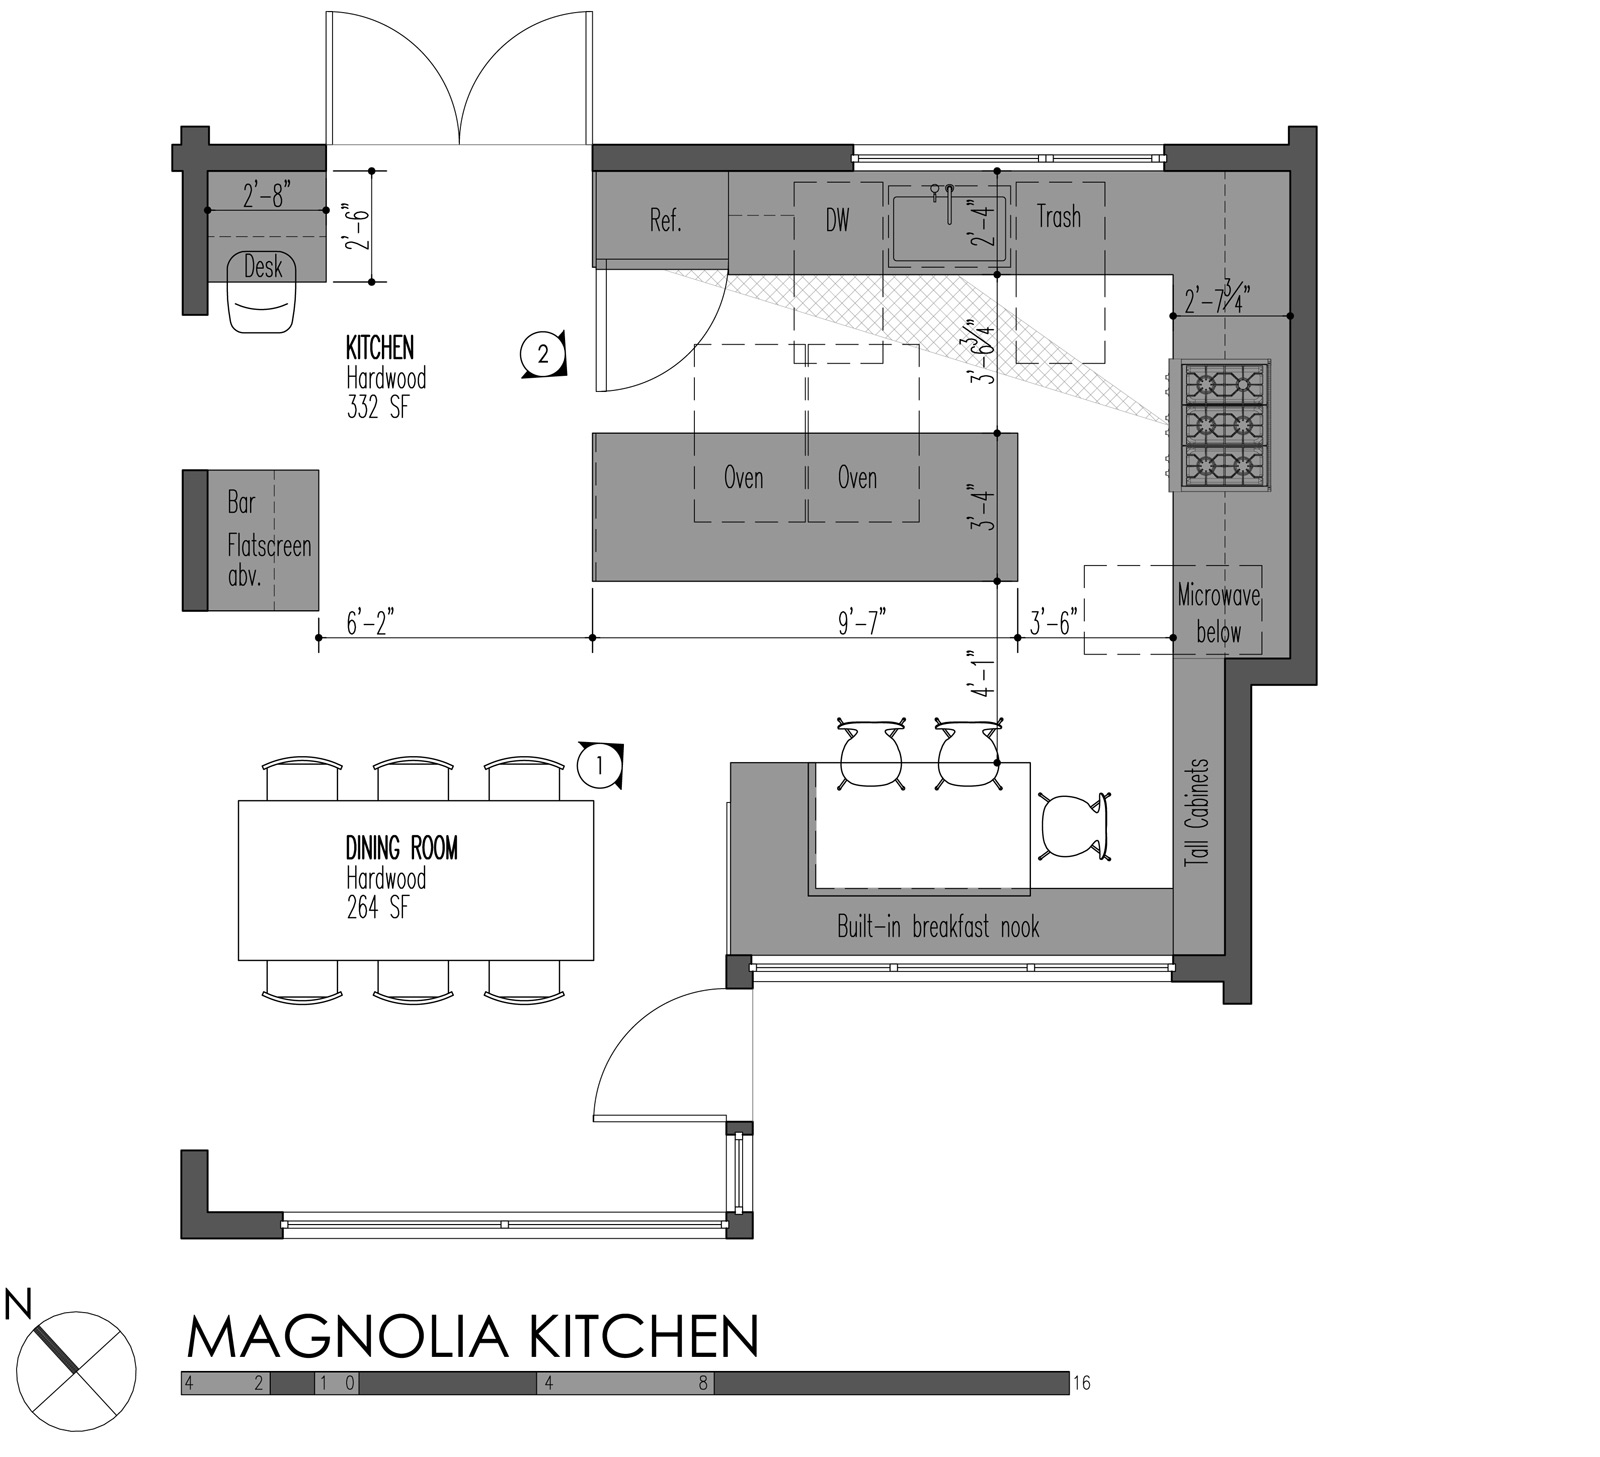 Kitchen construction design and layout - Build Llc Magnolia Kitchen Plan